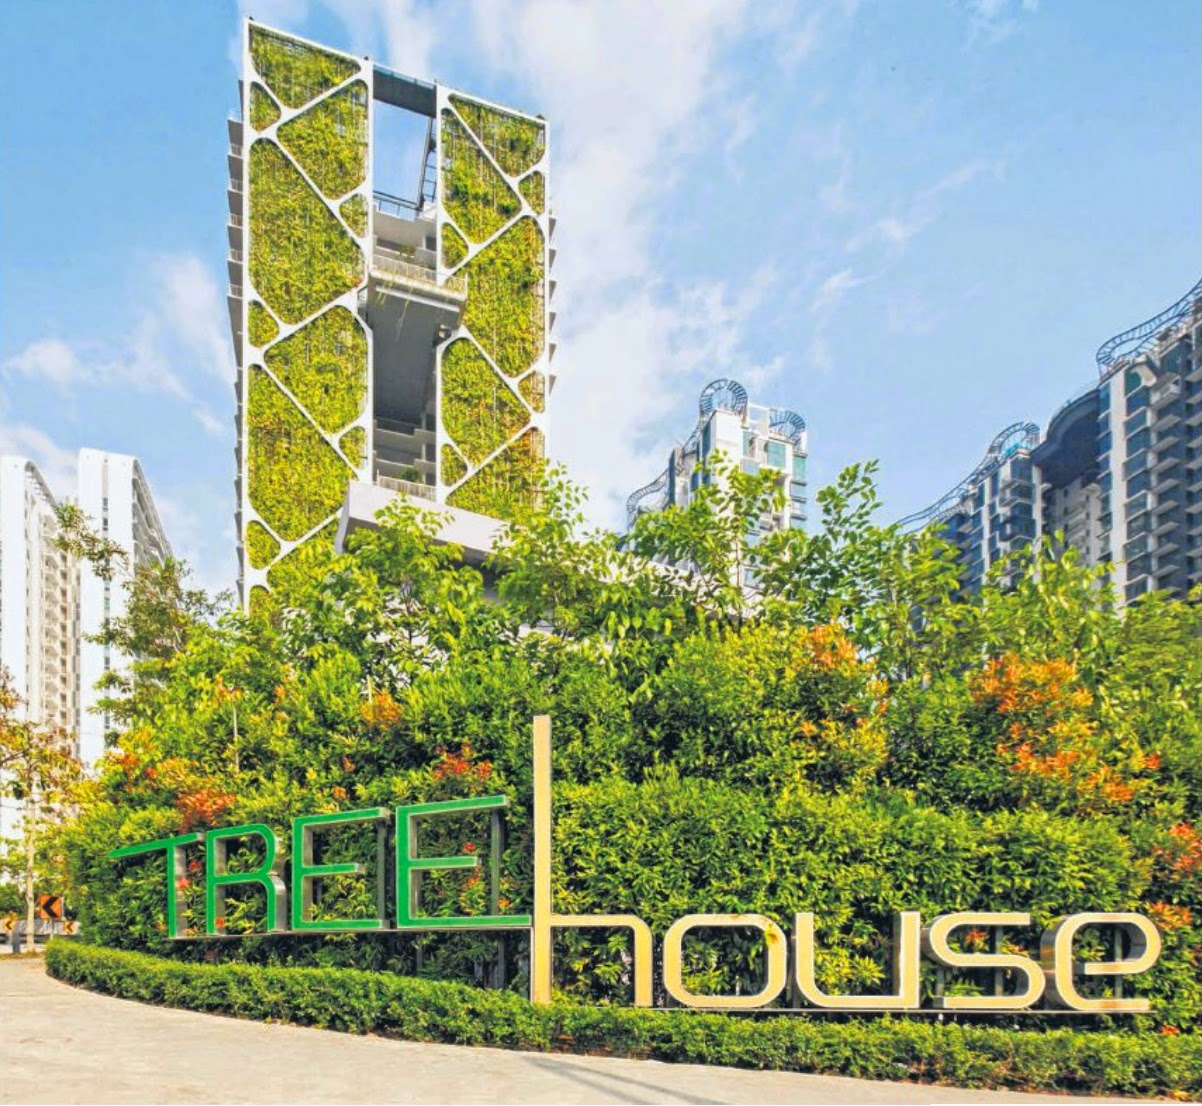 The largest vertical garden in the world: The Tree House condominium in Bukit Timah, with a 24-storey tower